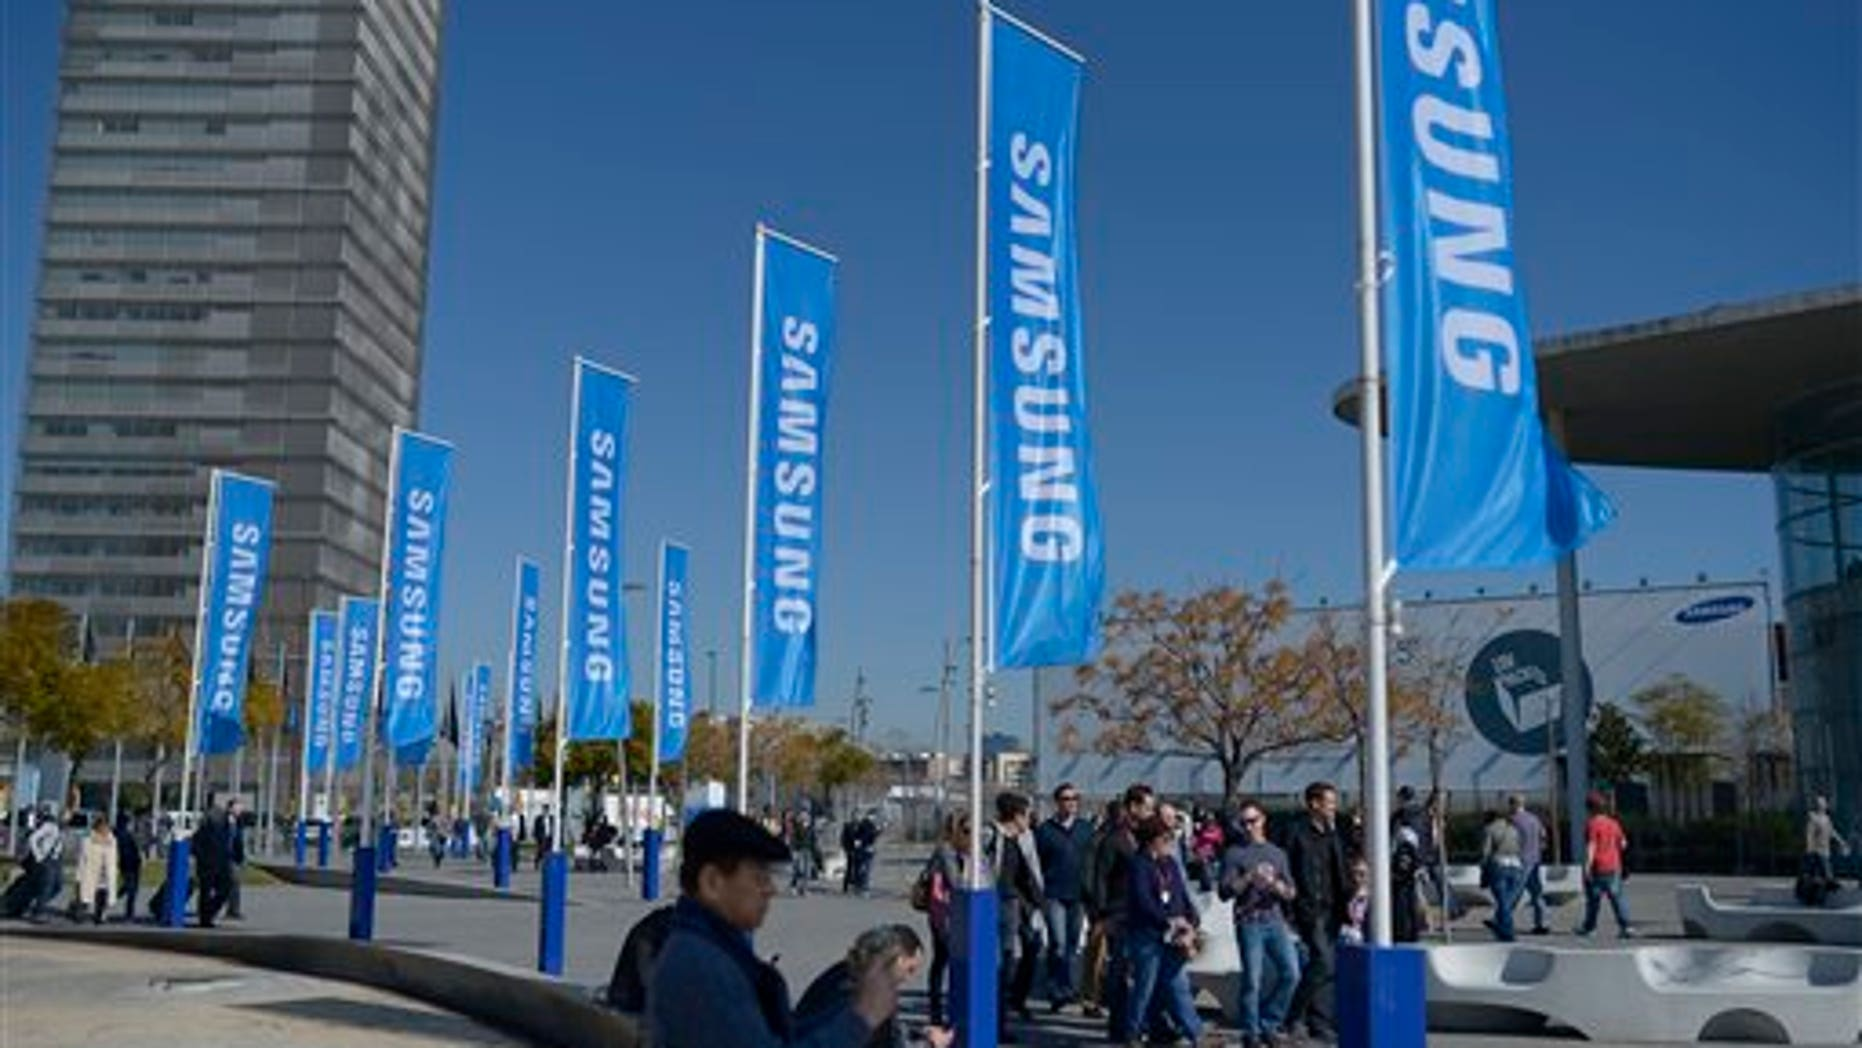 Visitors walk outside  the Mobile World Congress, the world's largest mobile phone trade show, in Barcelona, Spain, Sunday, Feb. 23, 2014. (AP Photo/Manu Fernandez)